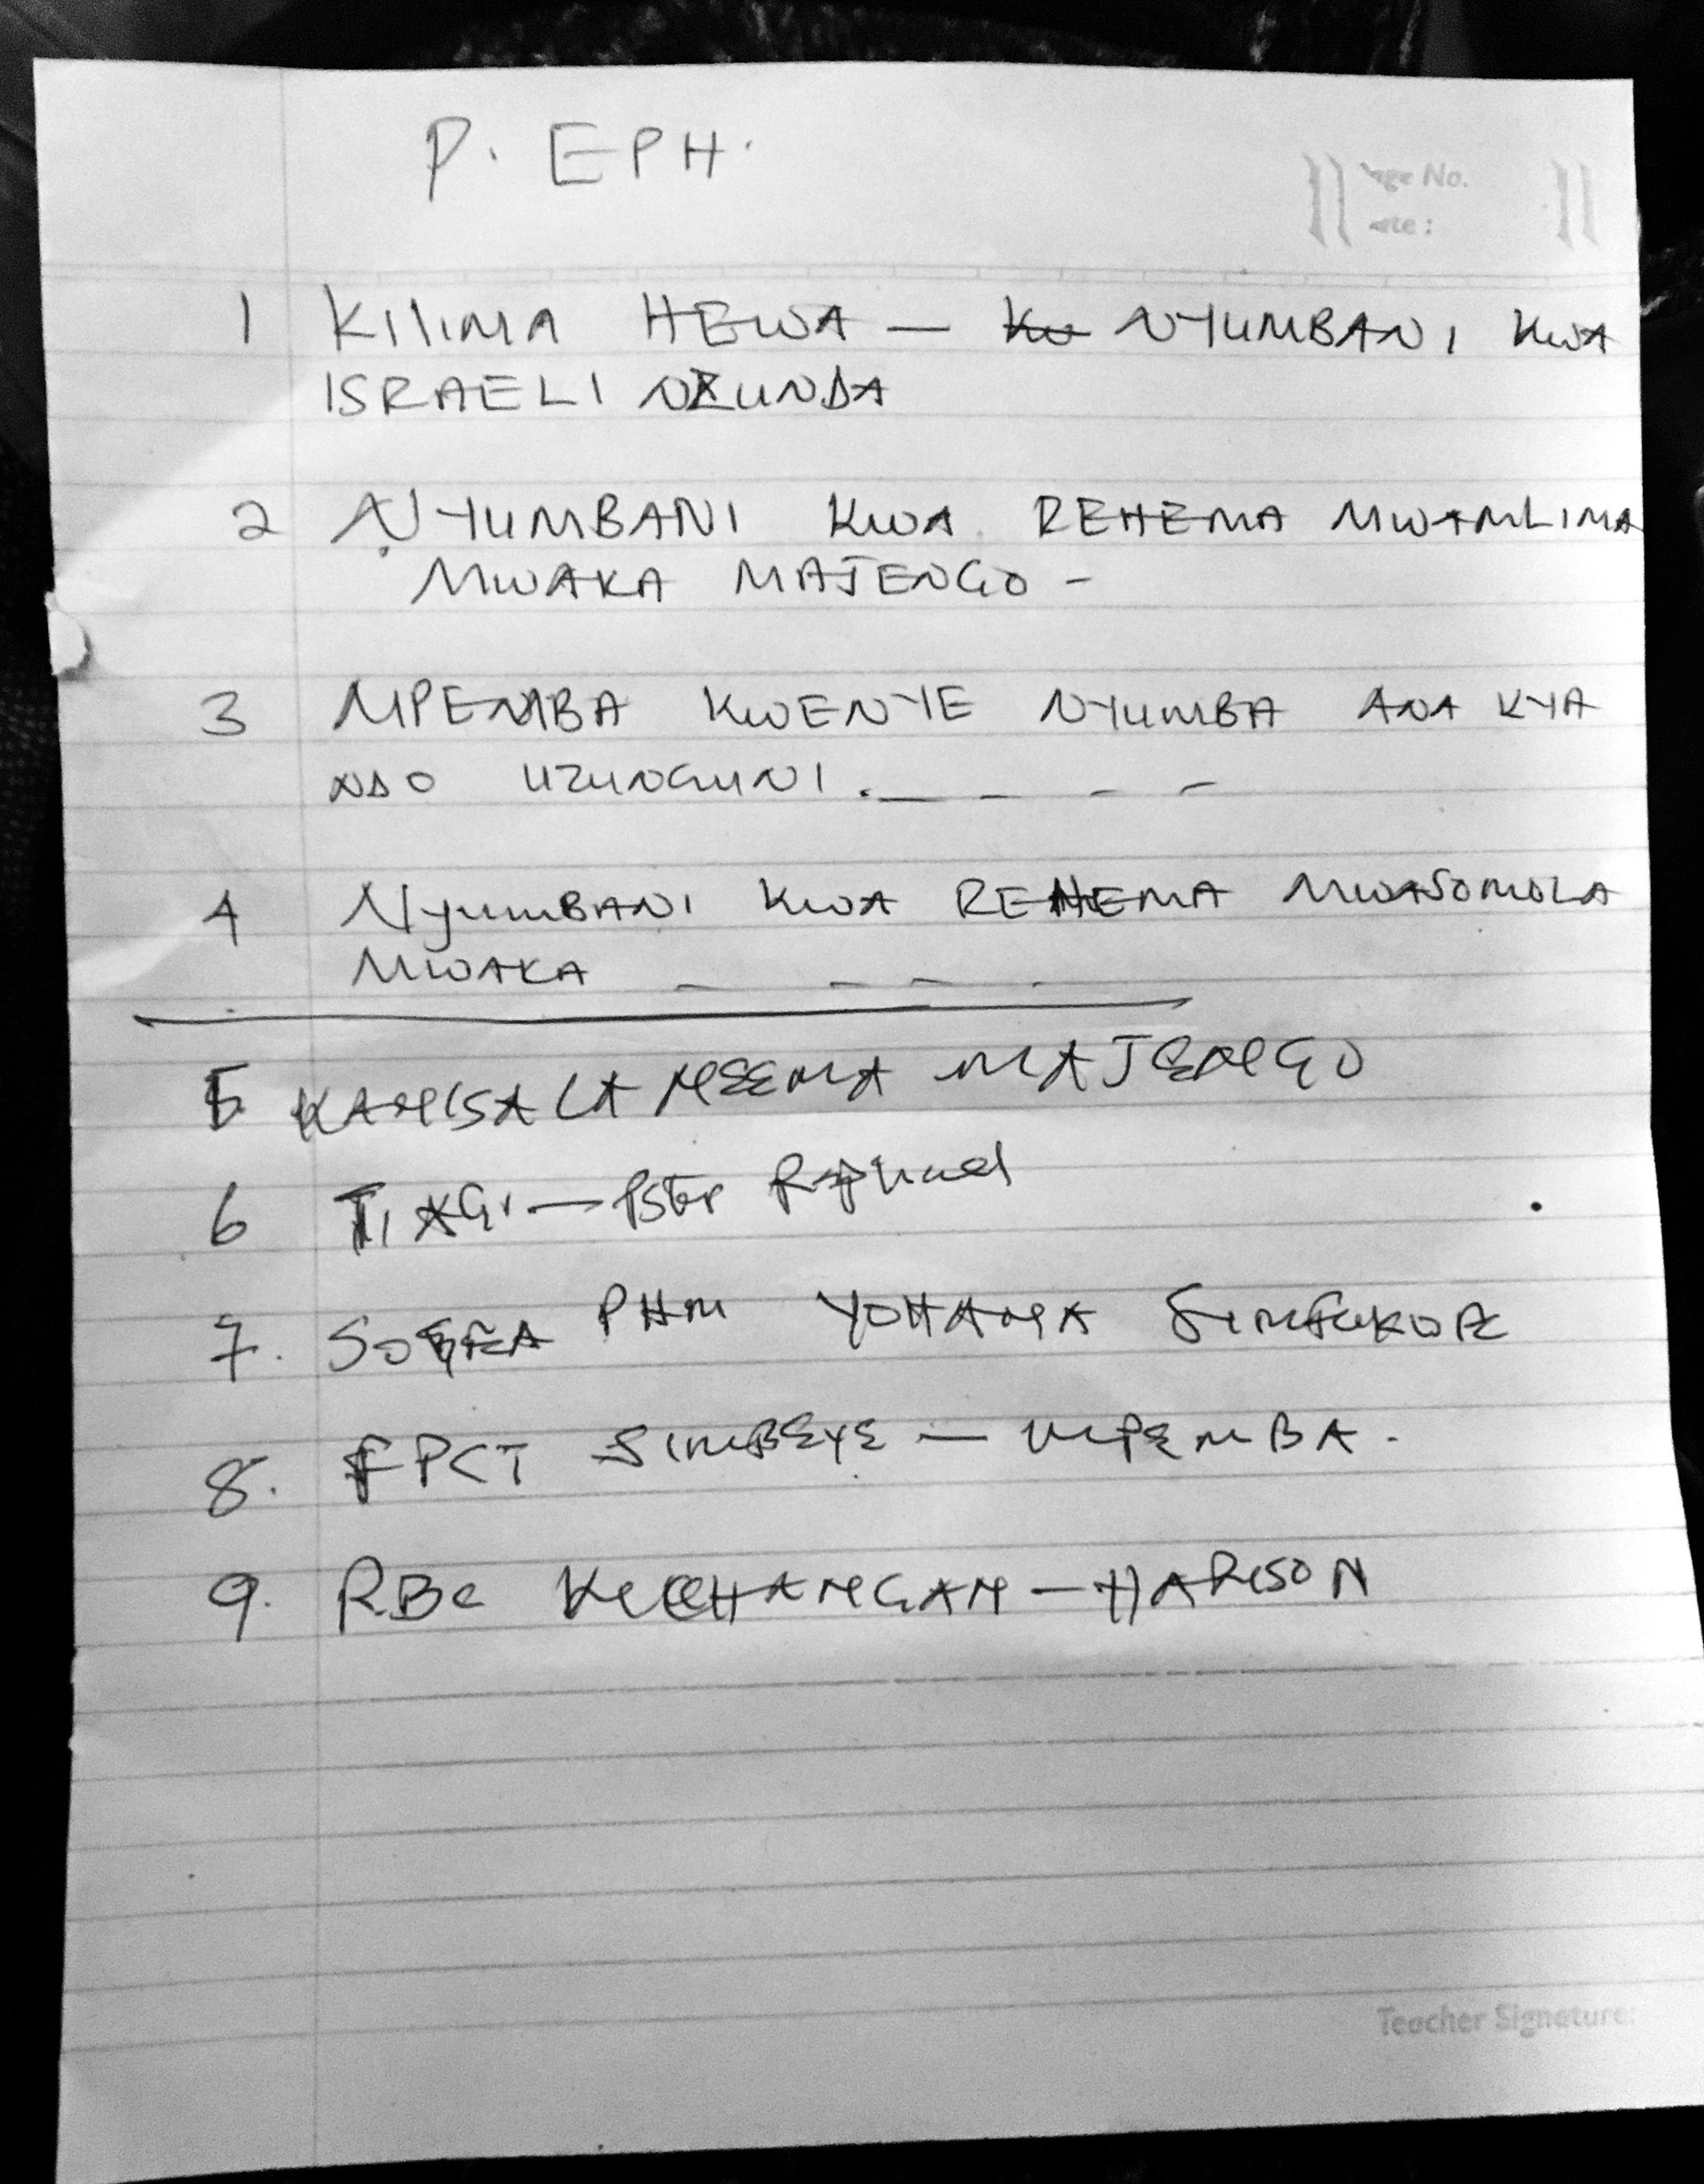 Azikiwe's list of the evangelism teams going out, where they will focus their efforts, and who the leaders will be in the new Cell Churches planted